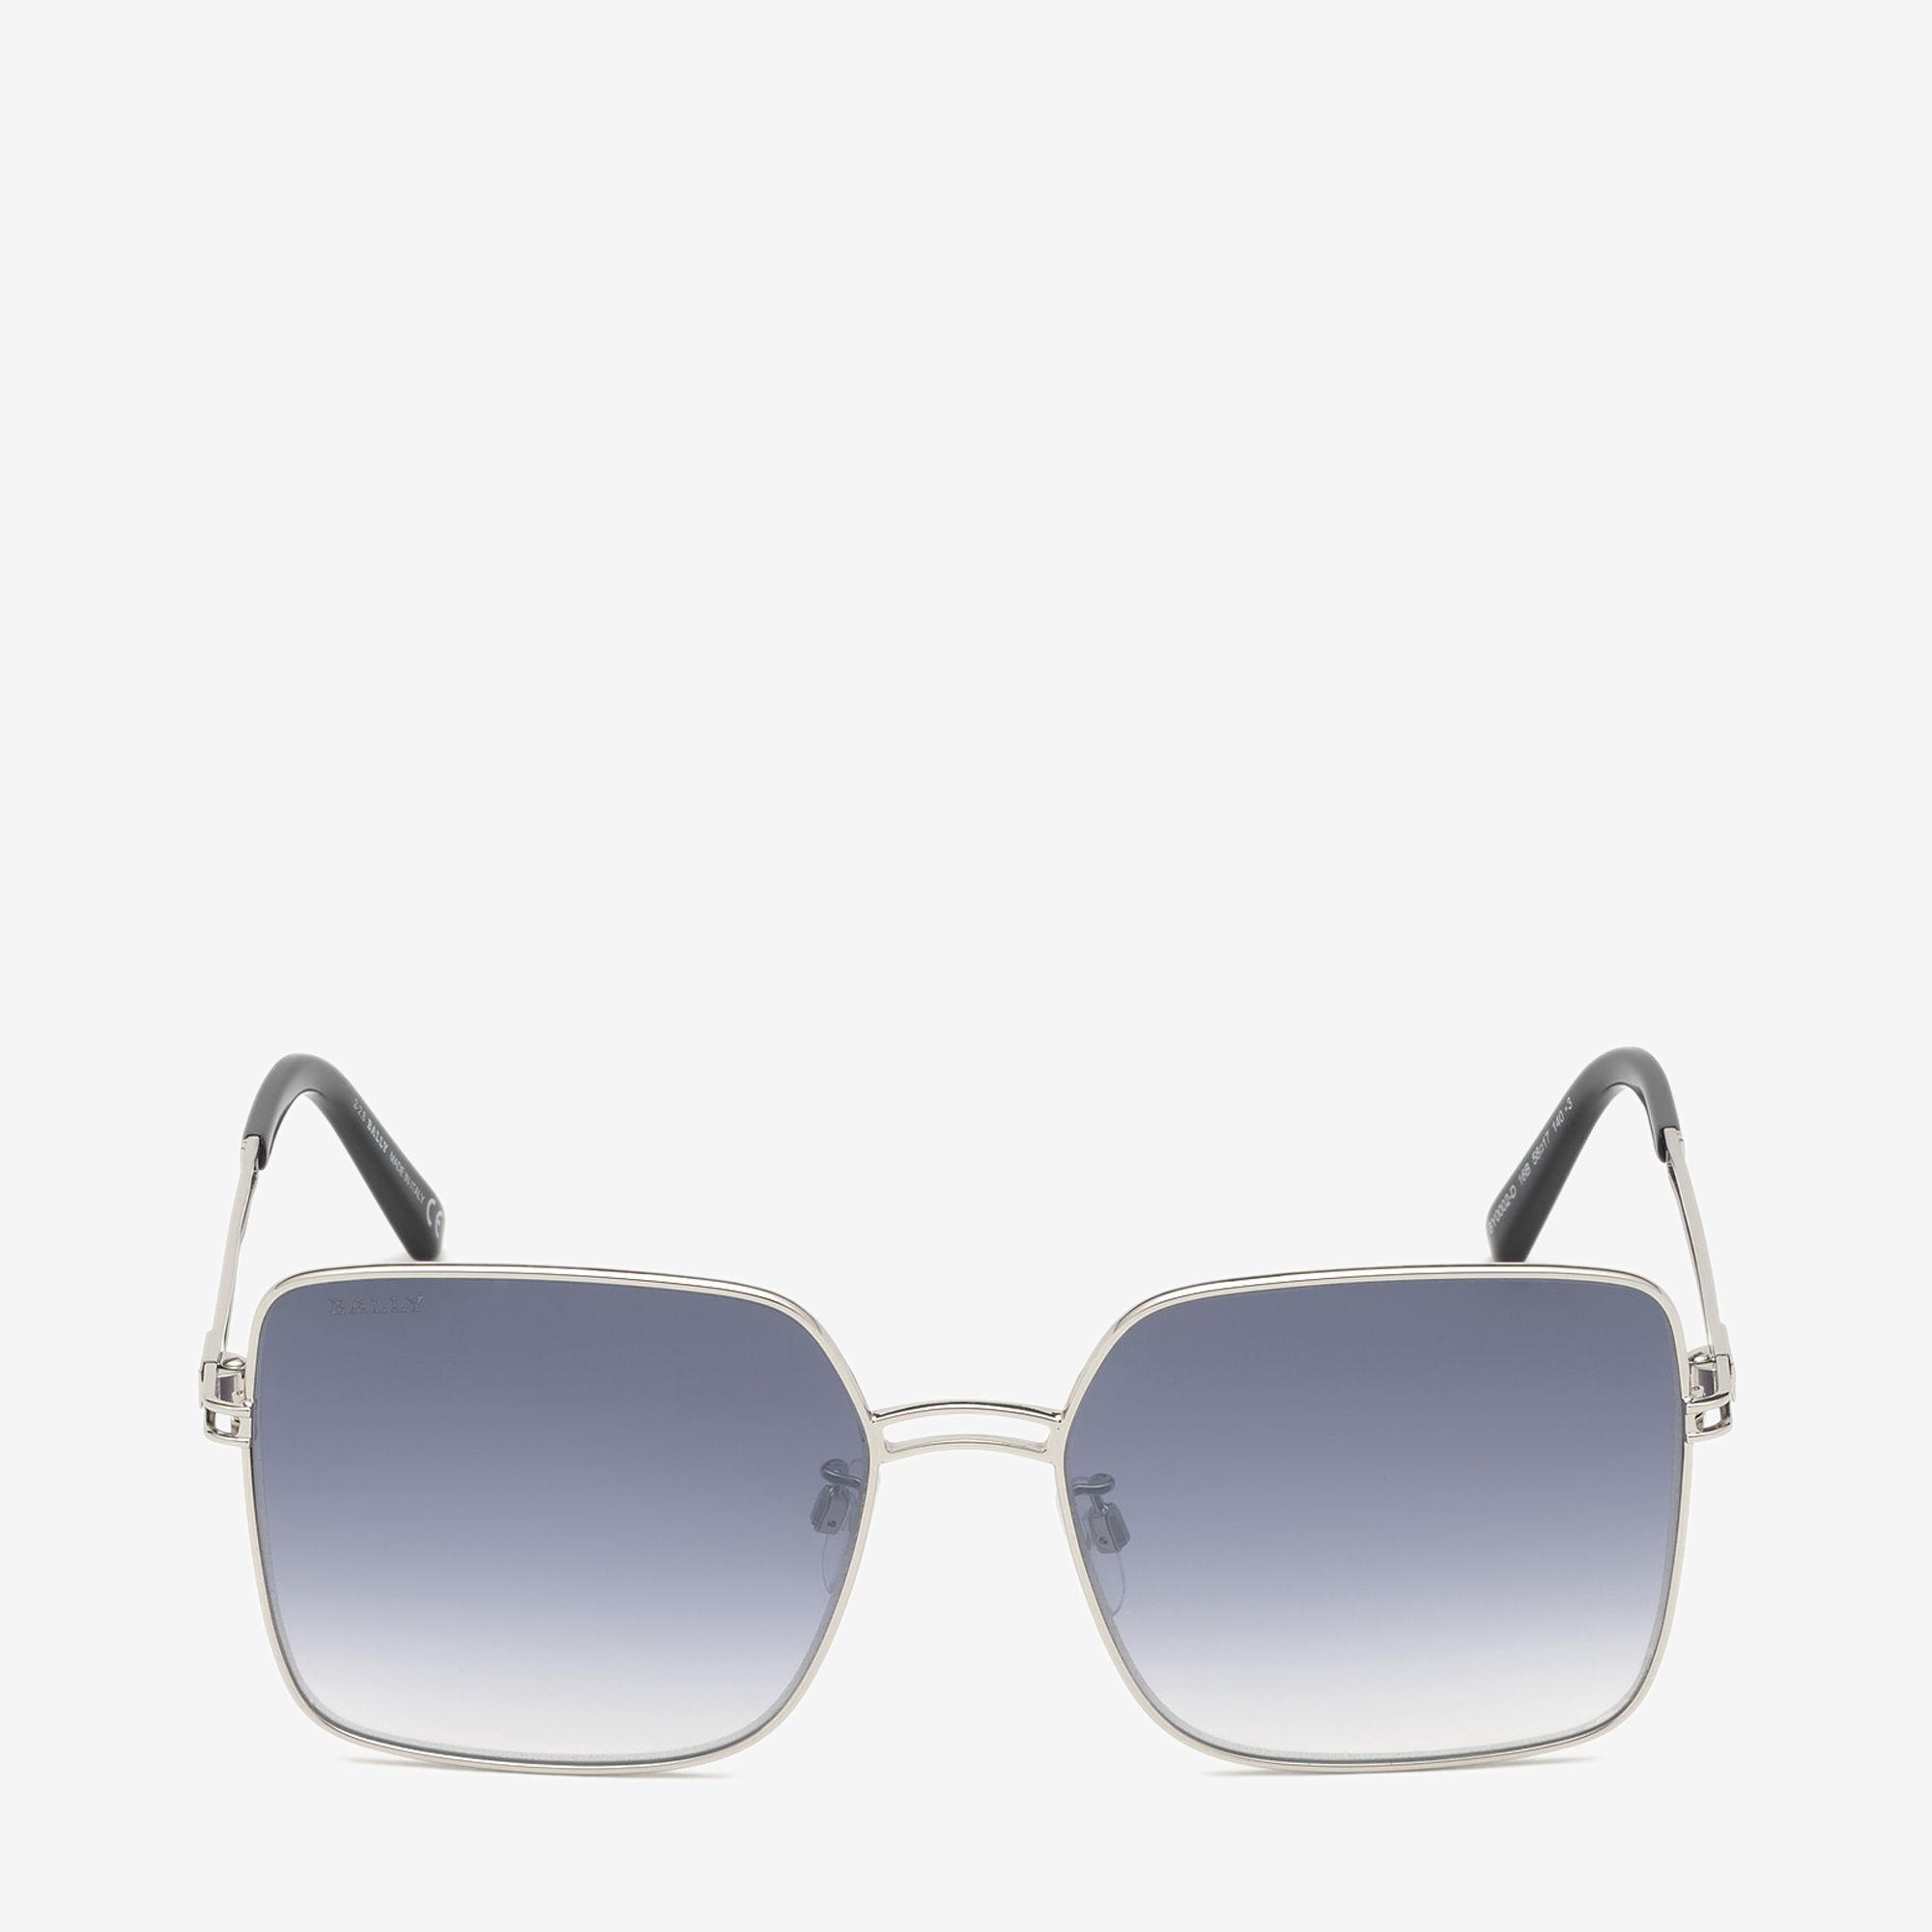 442dc83217 Lyst - Bally Sunkist Square Frame Sunglasses in Gray